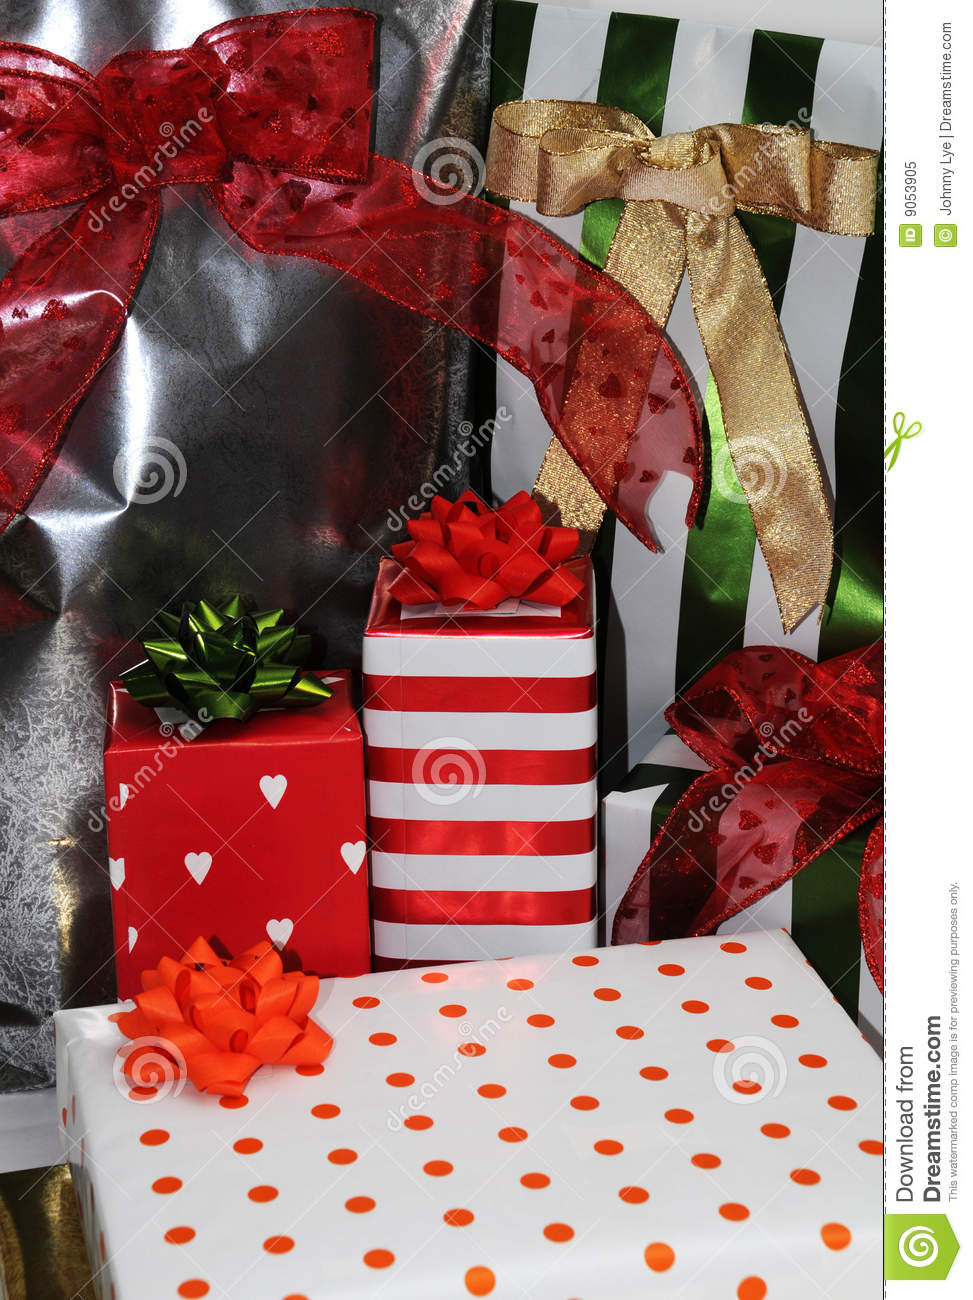 Gifts & Presents